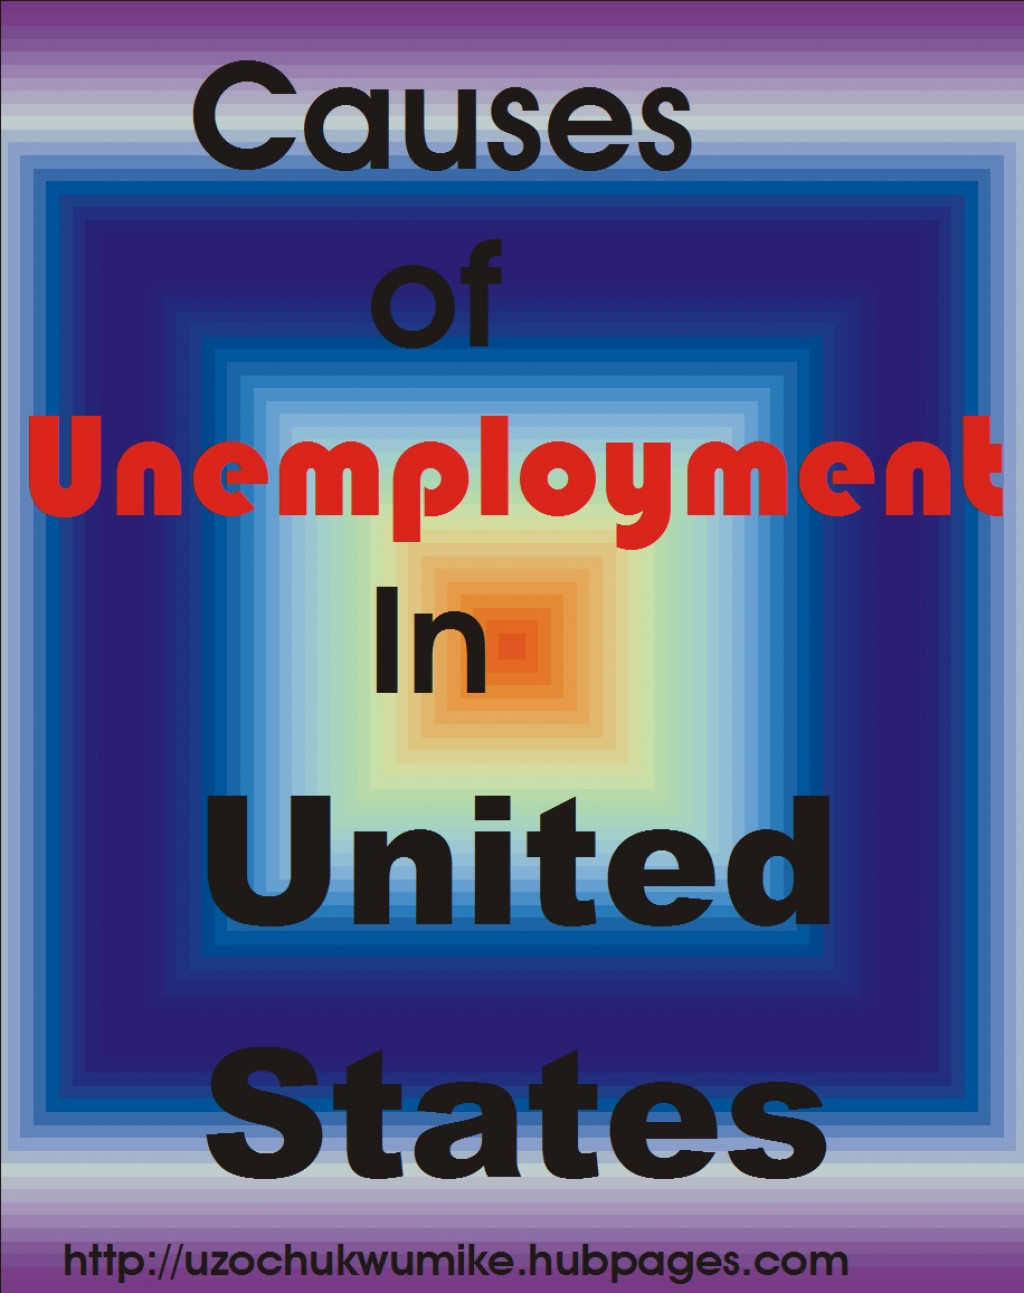 An introduction and an analysis of the issue of unemployment in the united states